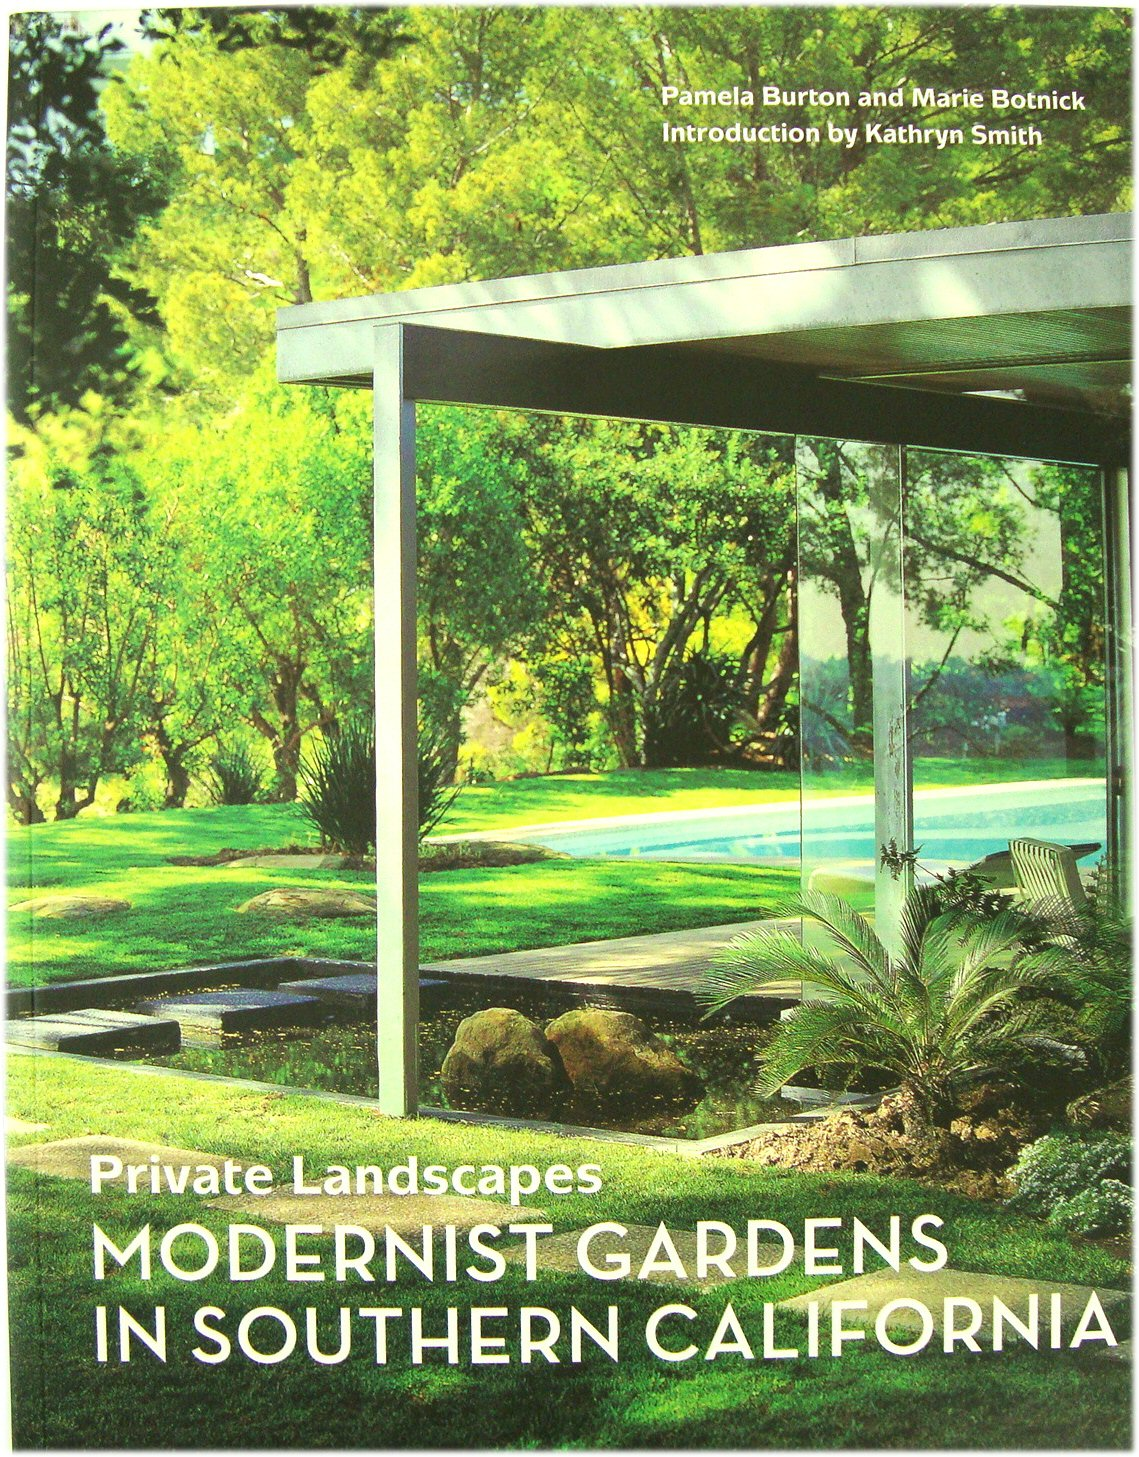 Image for Private Landscapes: Modernist Gardens in Southern California